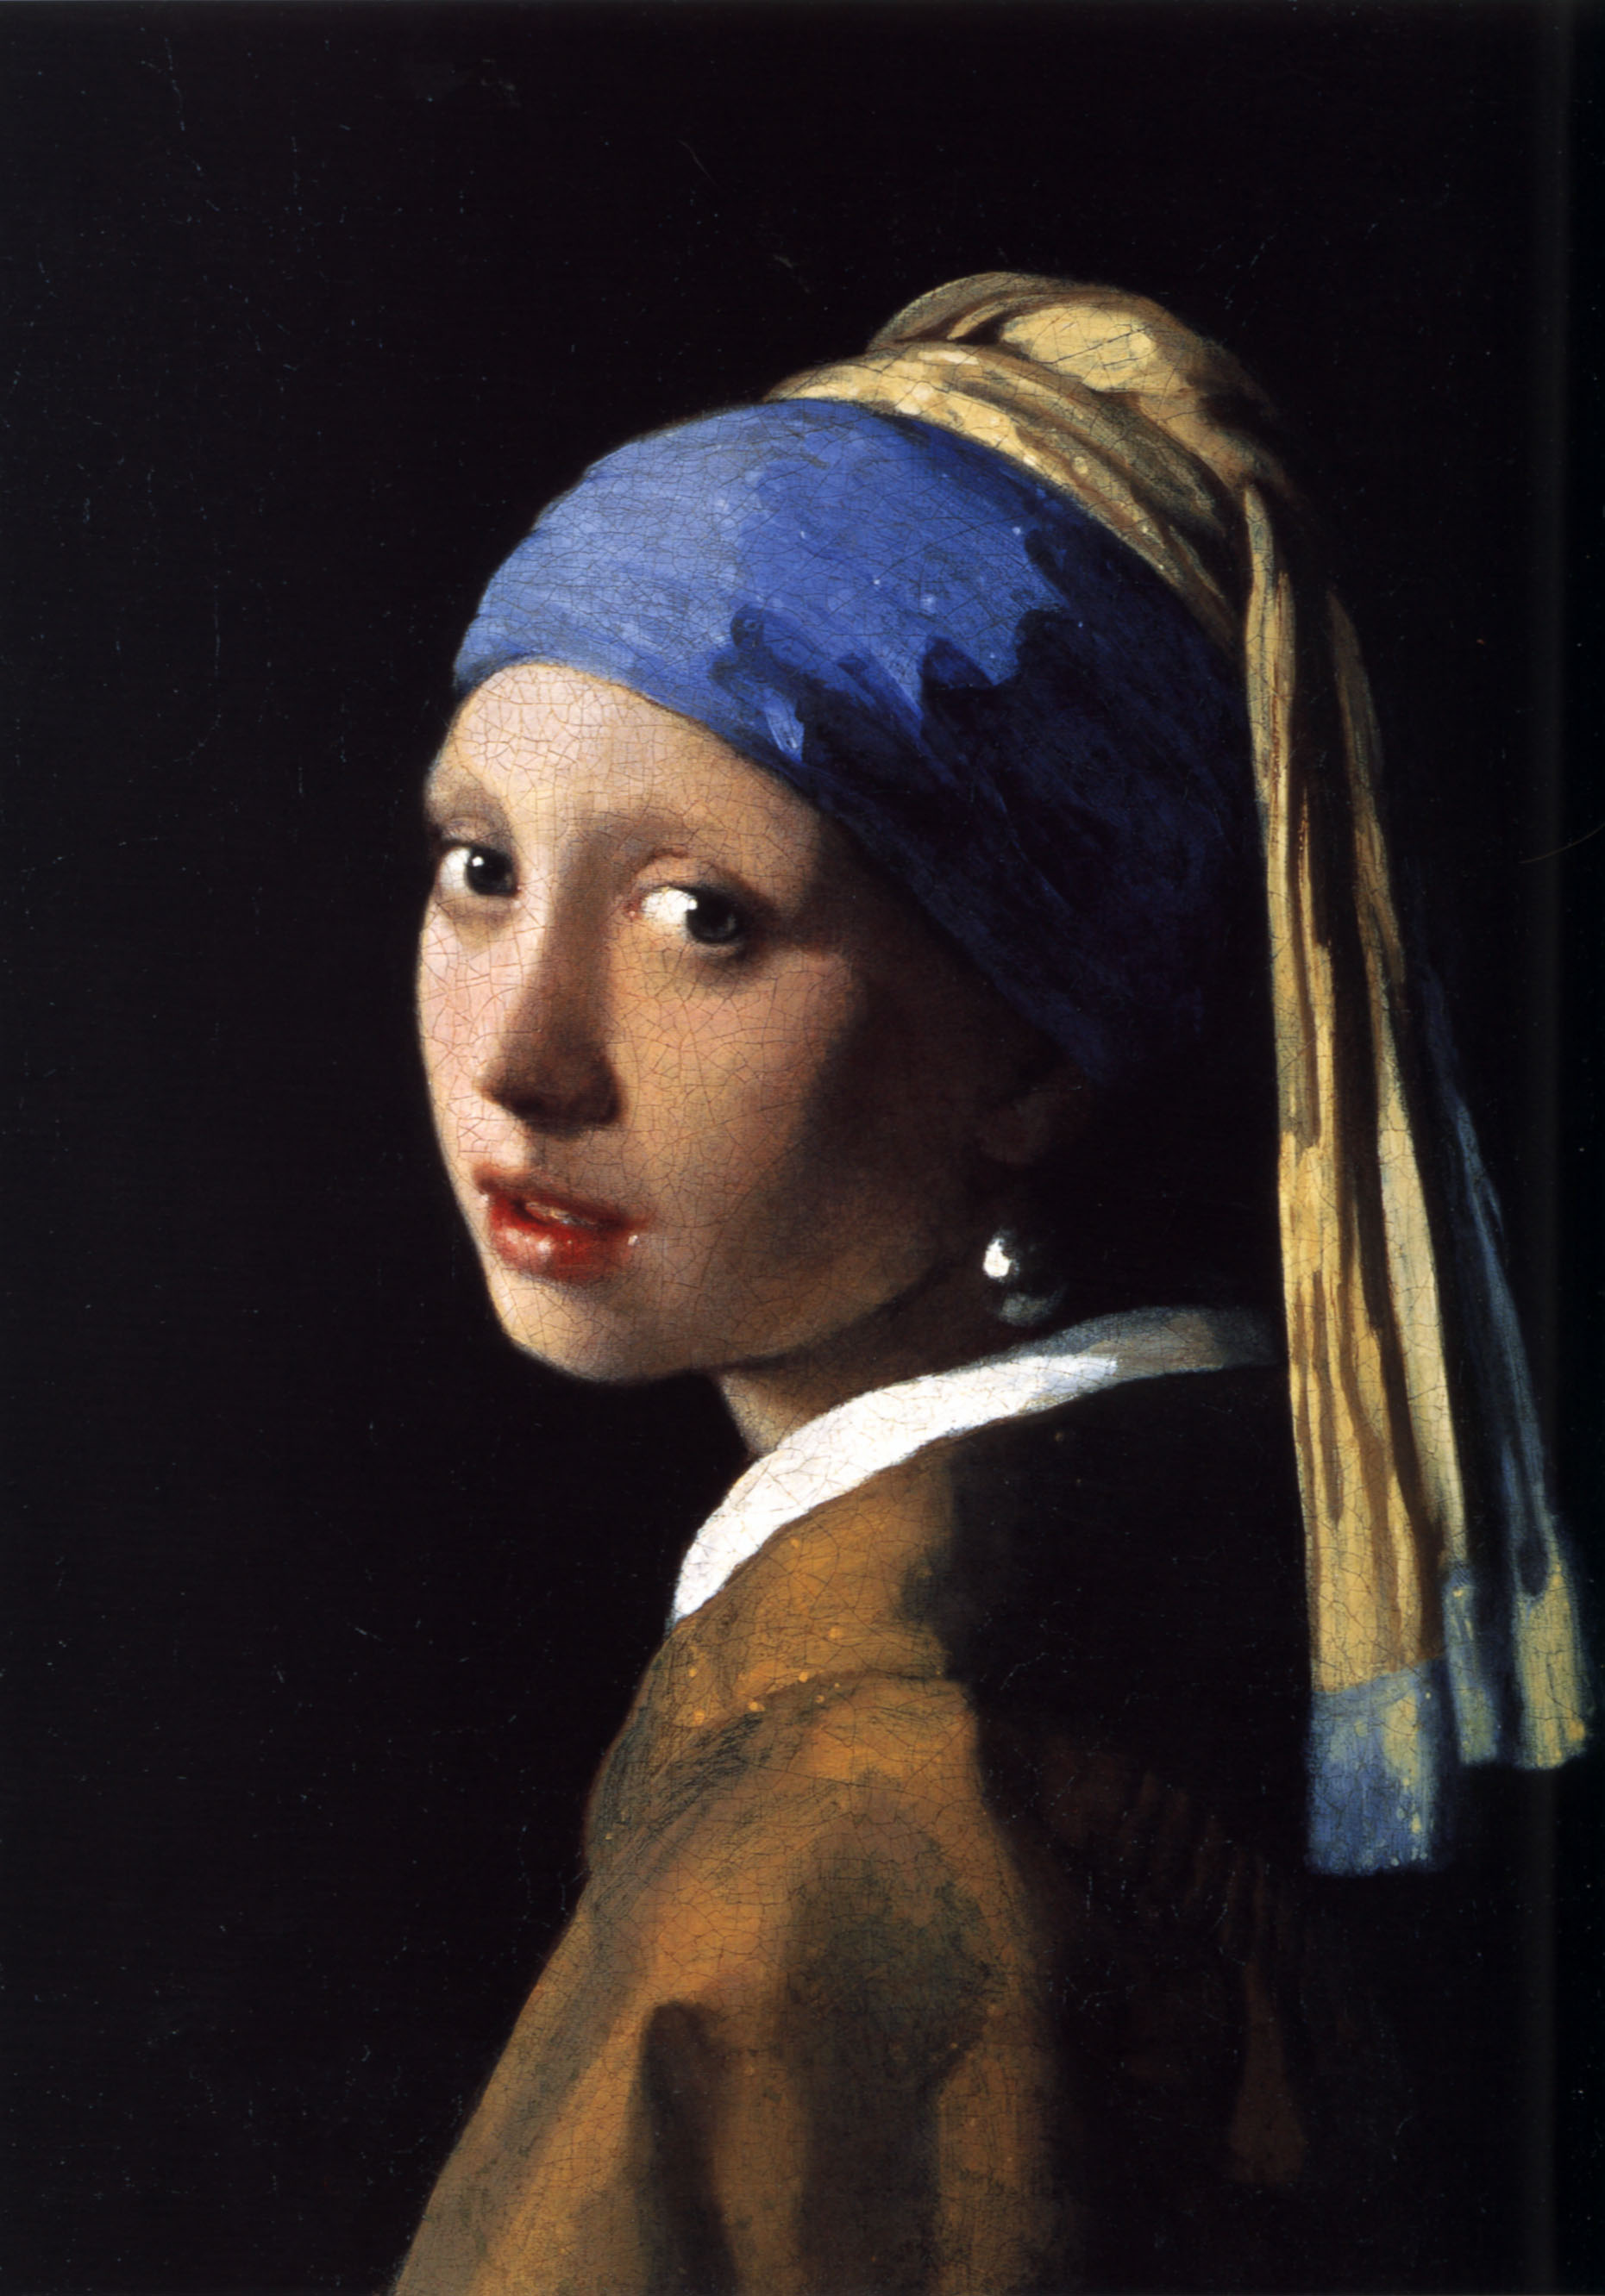 essay questions for girl with a pearl earring Girl with a pearl earring free essays - studymode in a nutshell, de sales wrote that women should protect their ears from unclean words, and that they should allow.